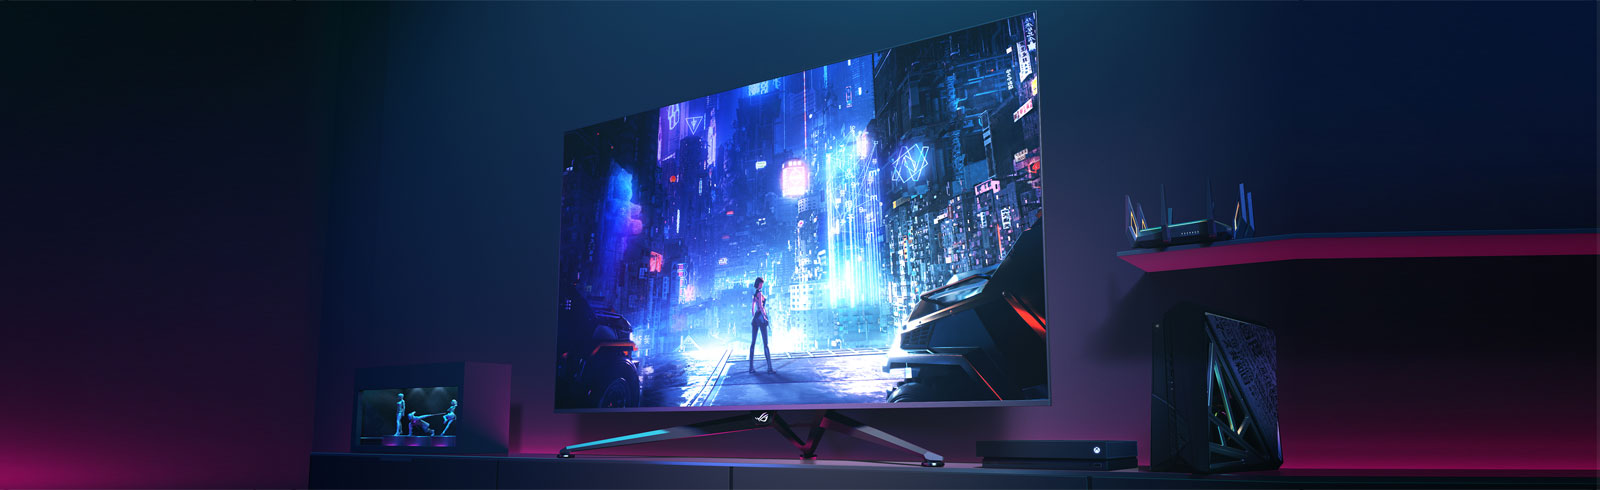 "Asus launches a big format gaming display - the 65"" 4K UHD ROG Swift PG65UQ"